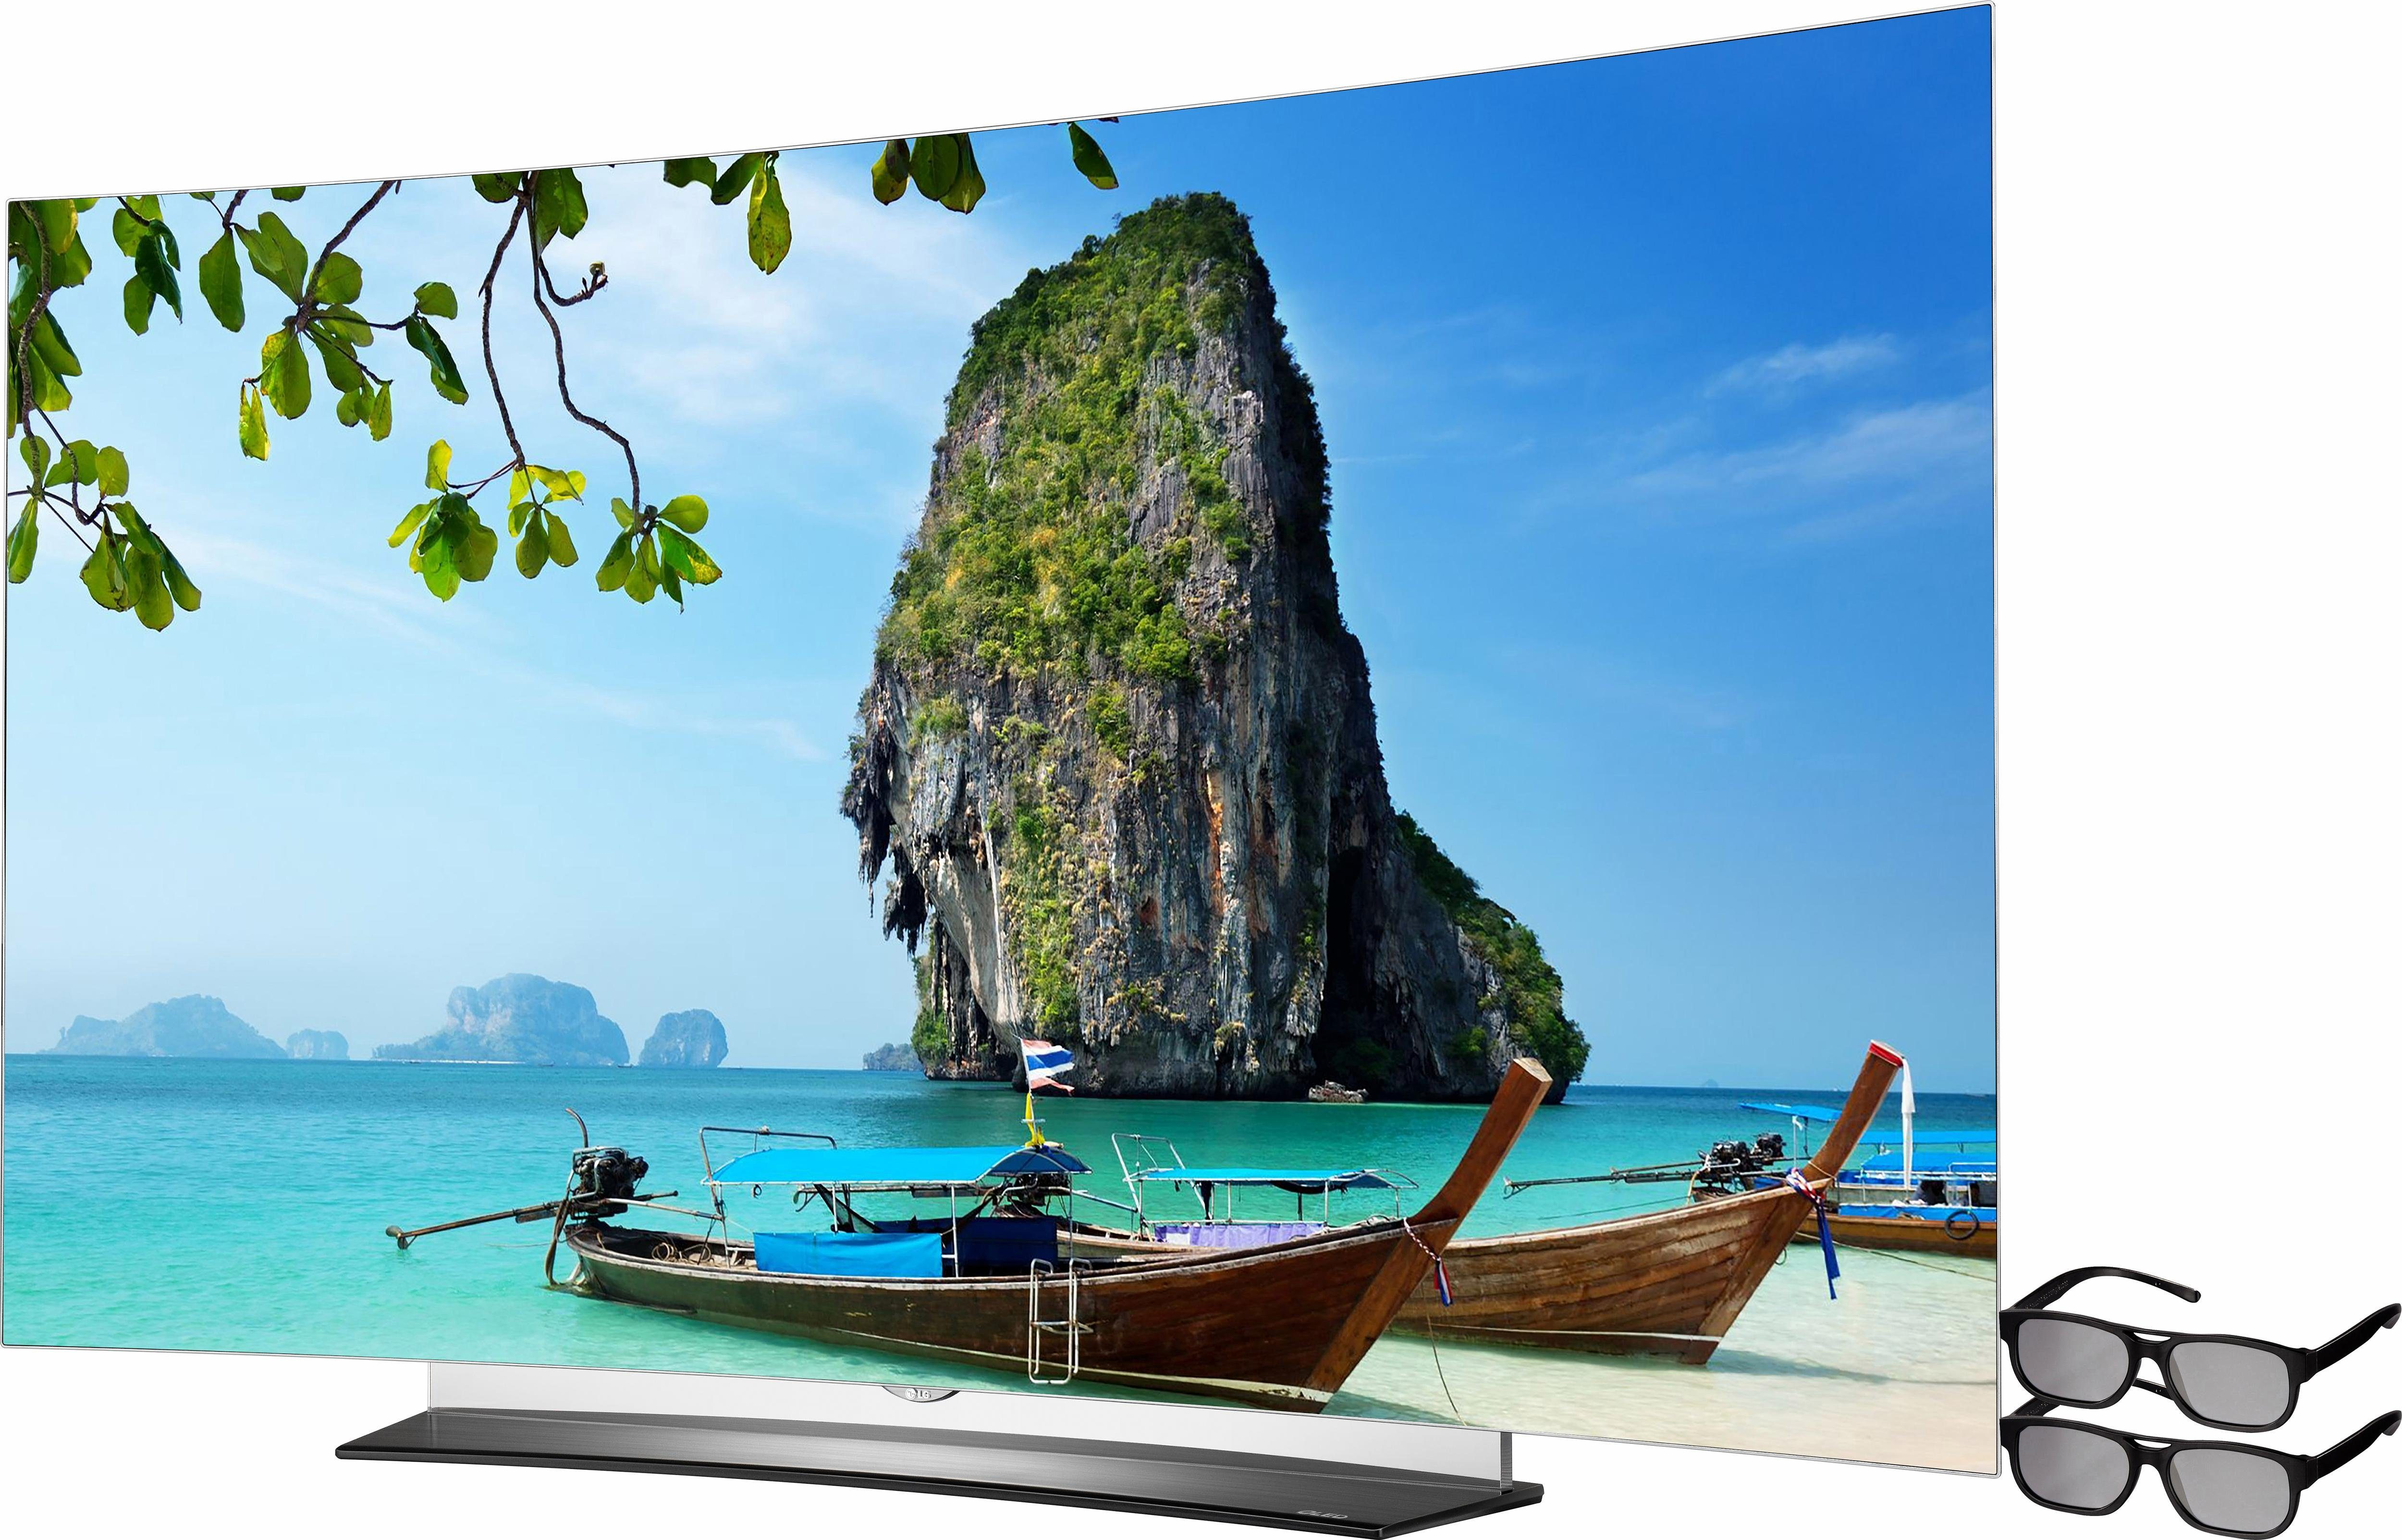 LG OLED65C6D, Curved-OLED-Fernseher, 164 cm (65 Zoll), 2160p (4K Ultra HD), Smart-TV